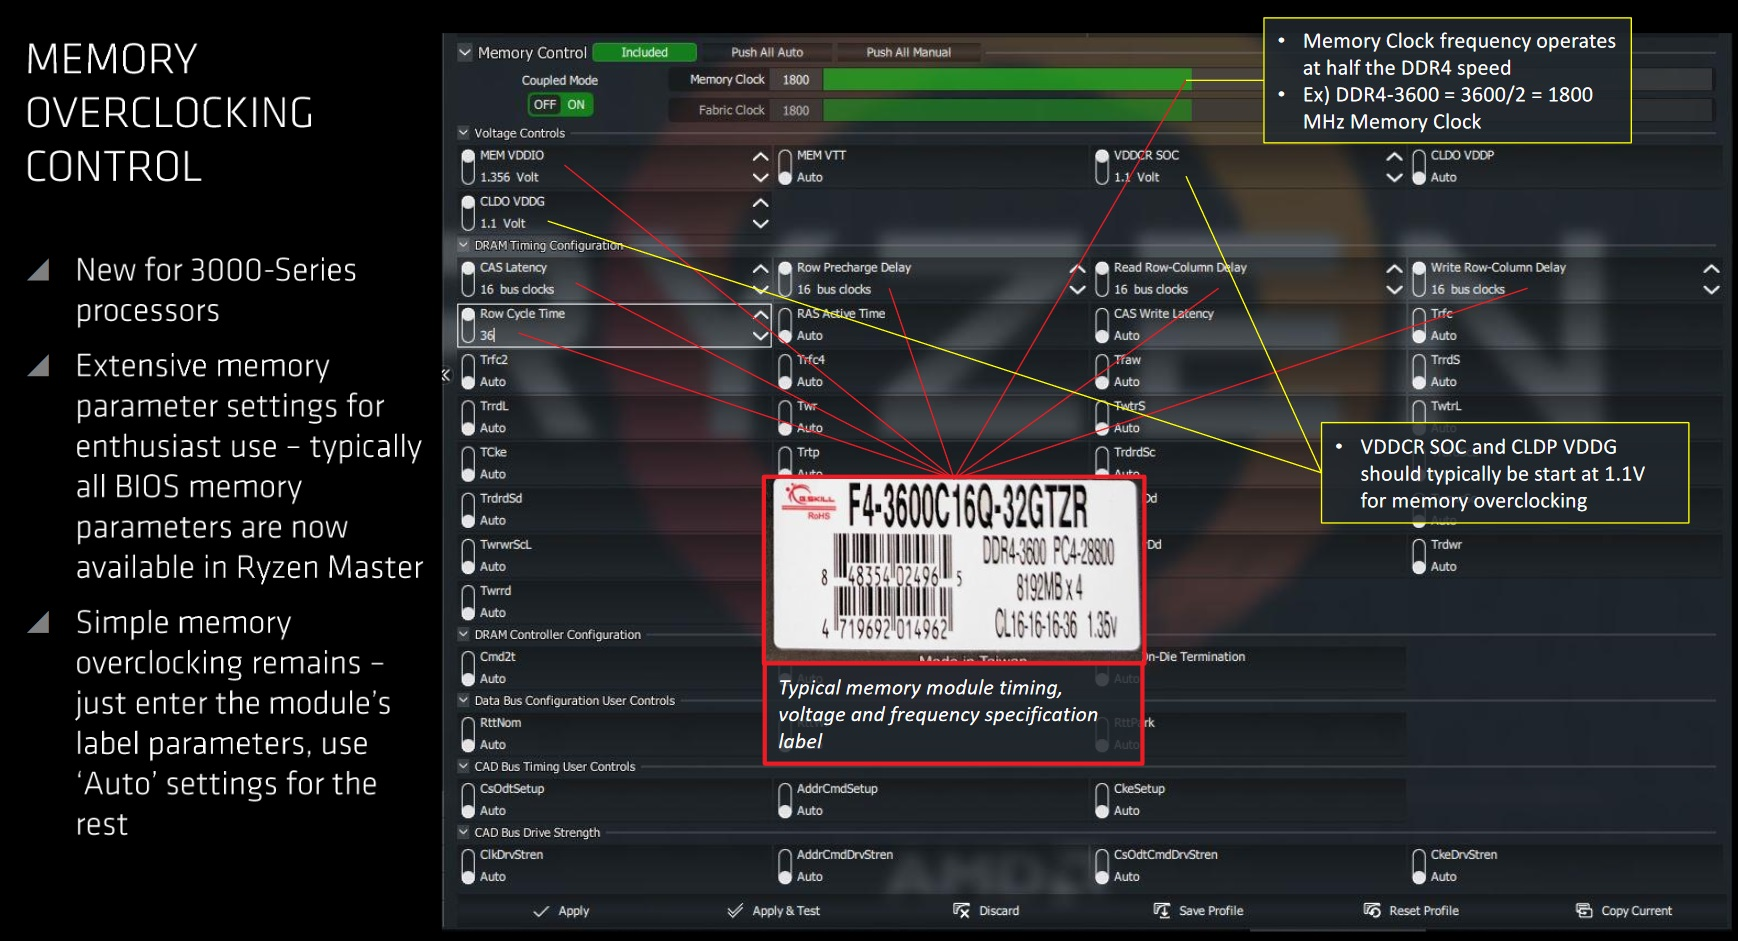 Click image for larger version  Name:Ryzen Master 2.0 Memory Overclocking.jpg Views:316 Size:397.7 KB ID:299402